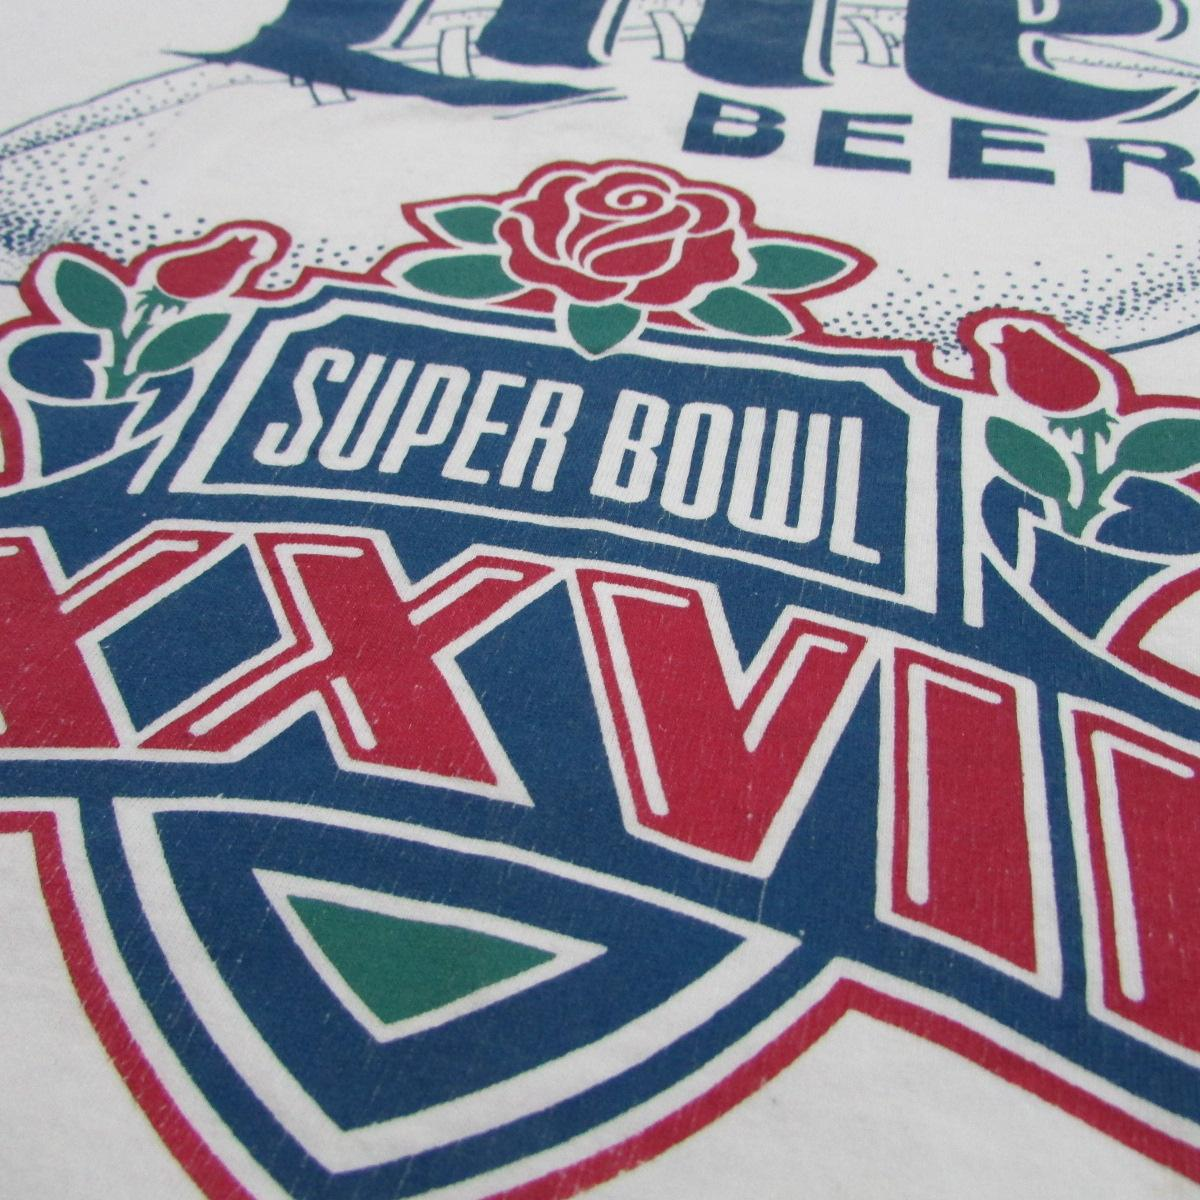 Miller Lite Beer Super Bowl 1993 Rose Bowl T-Shirt Sz XL